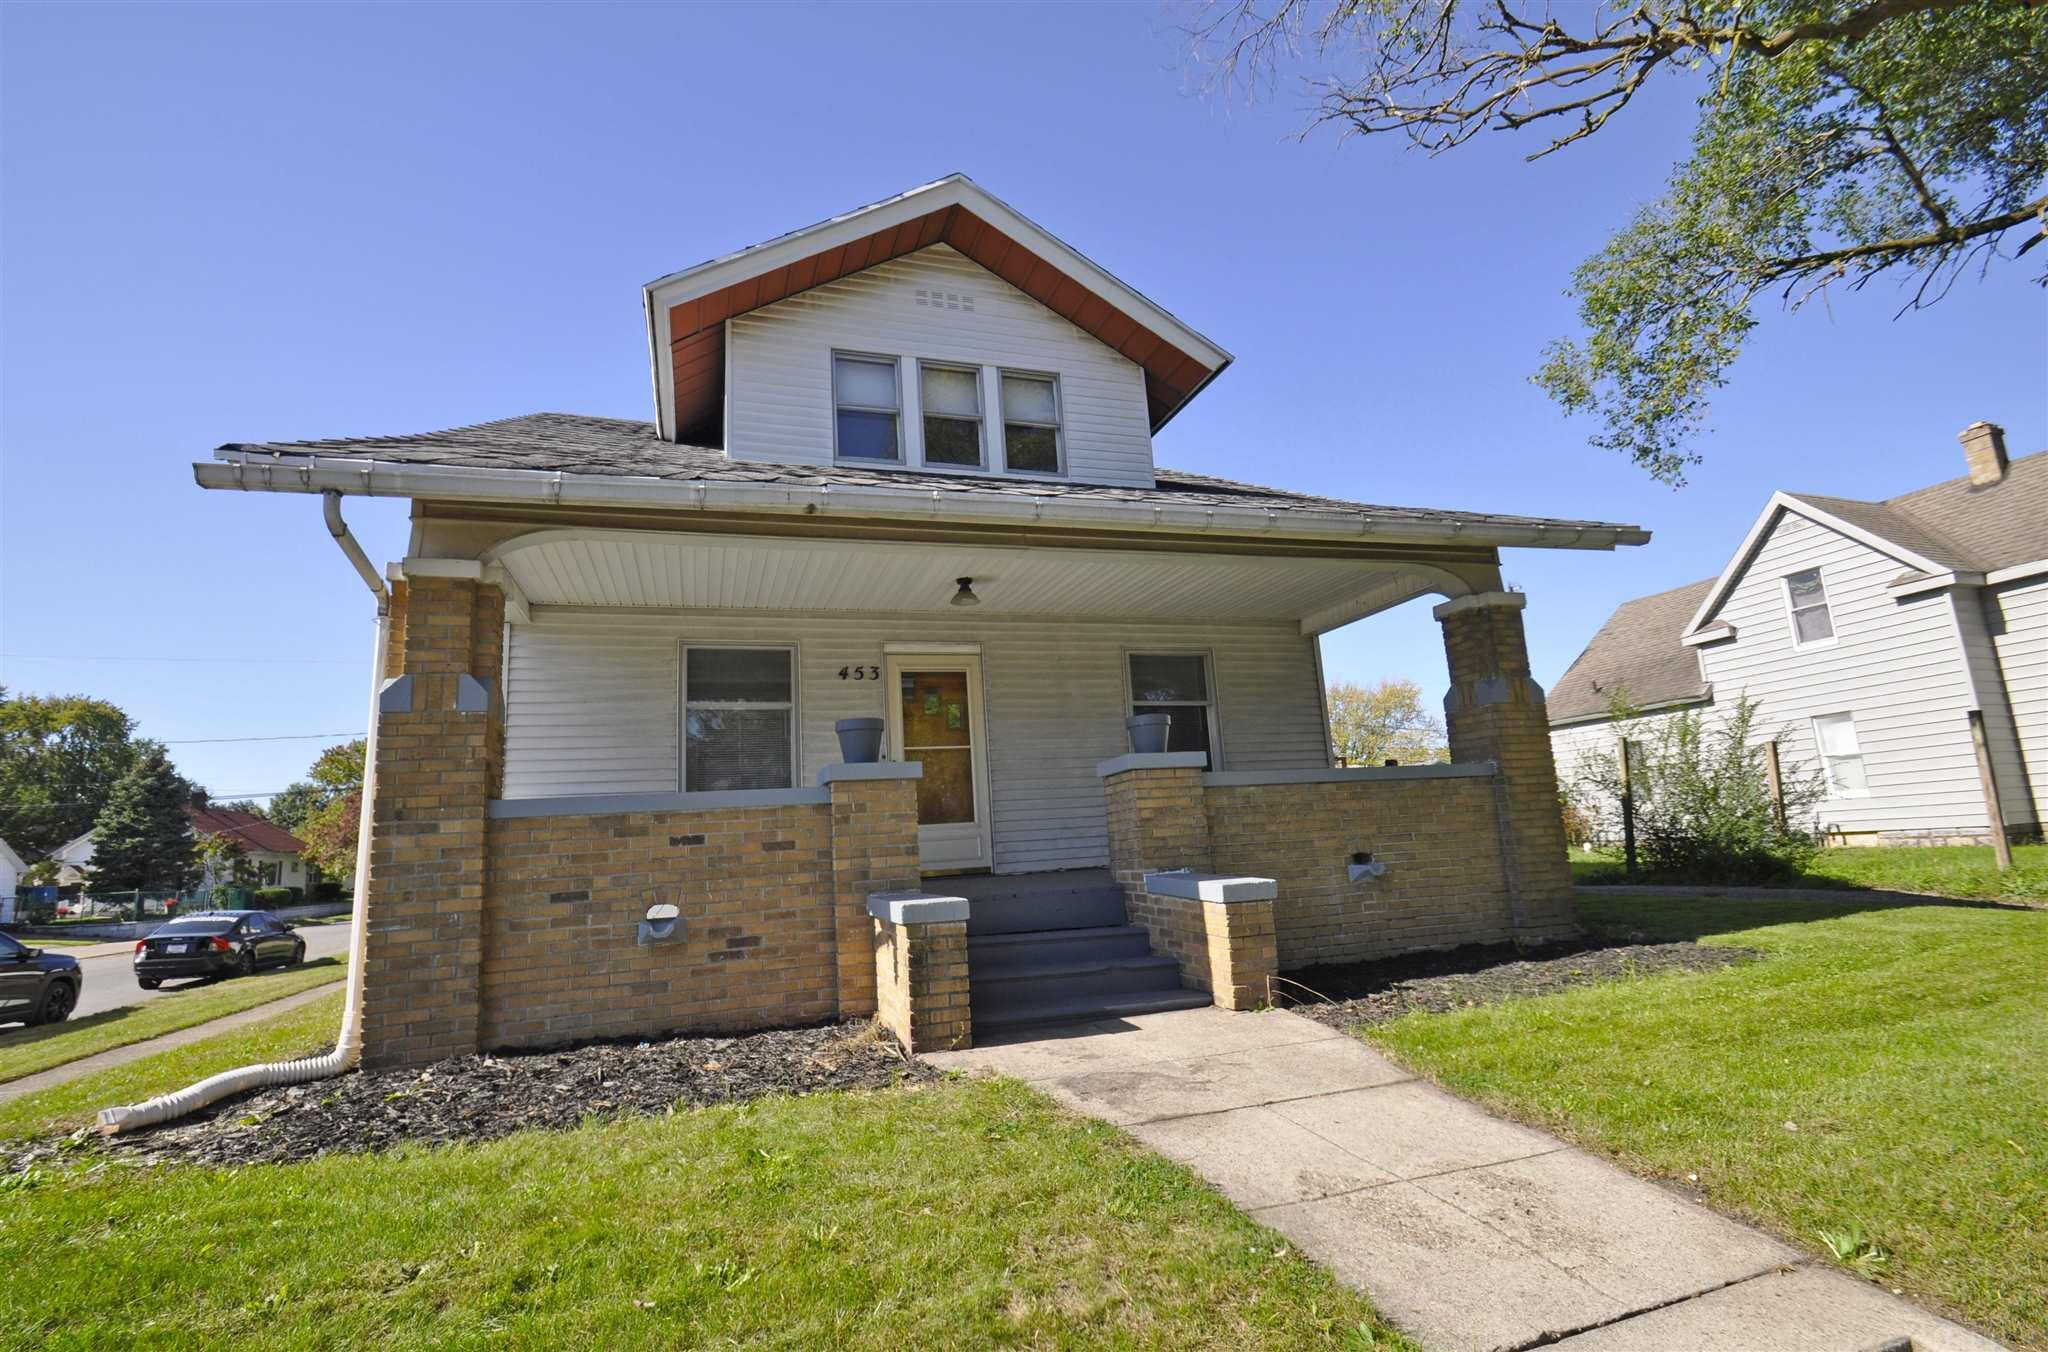 453 S Kaley South Bend, IN 46619